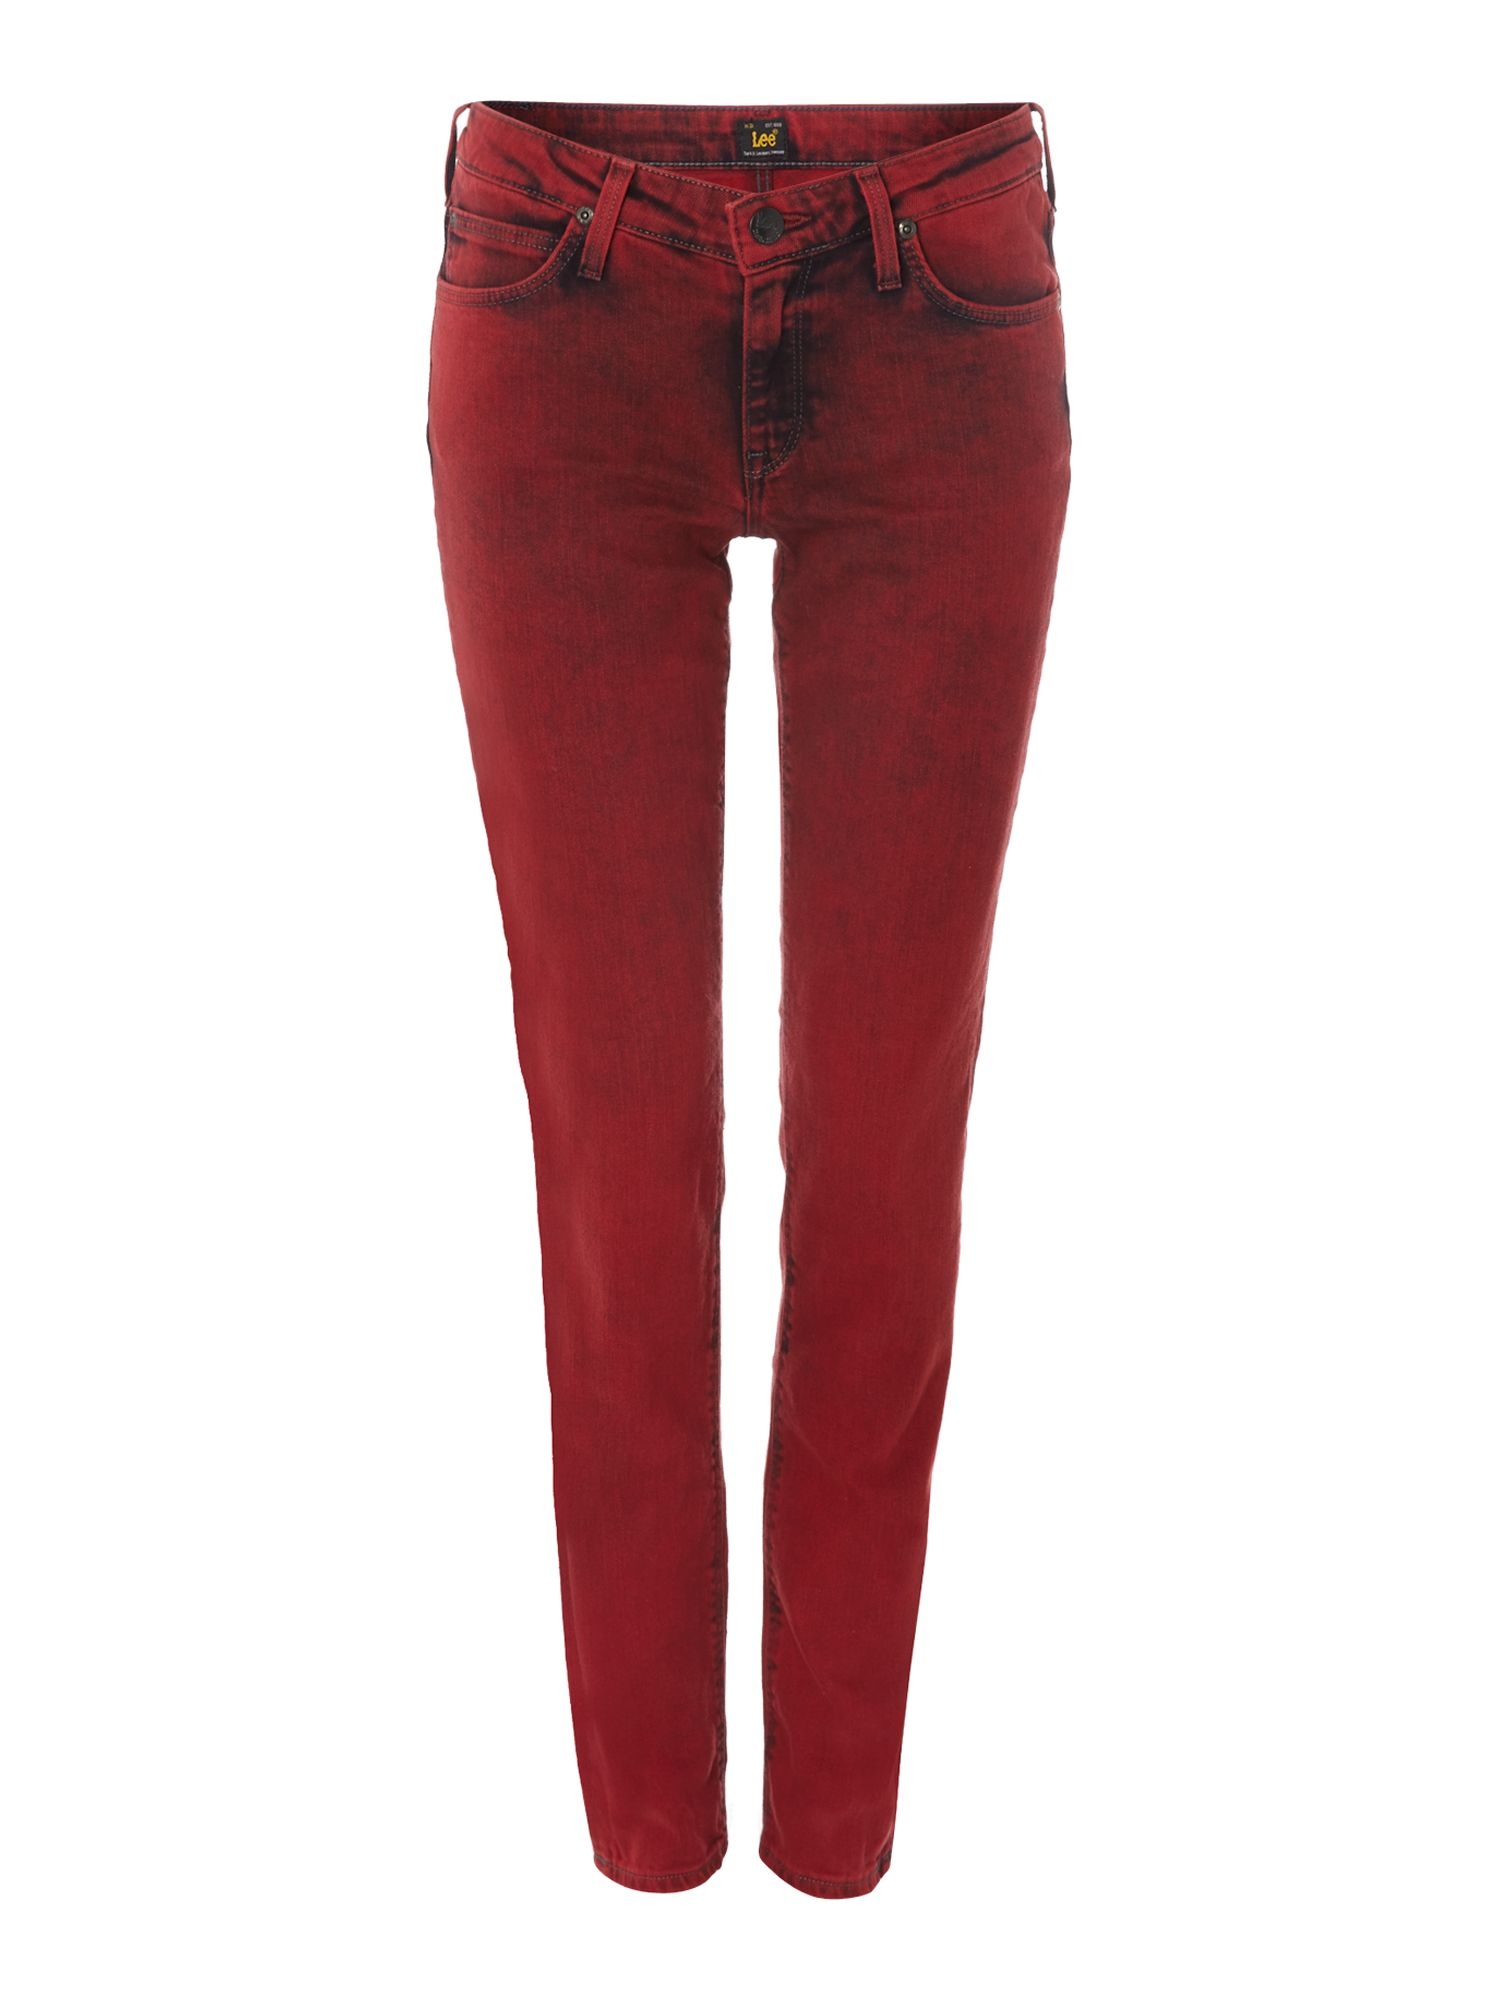 Scarlett skinny jean in red marbled